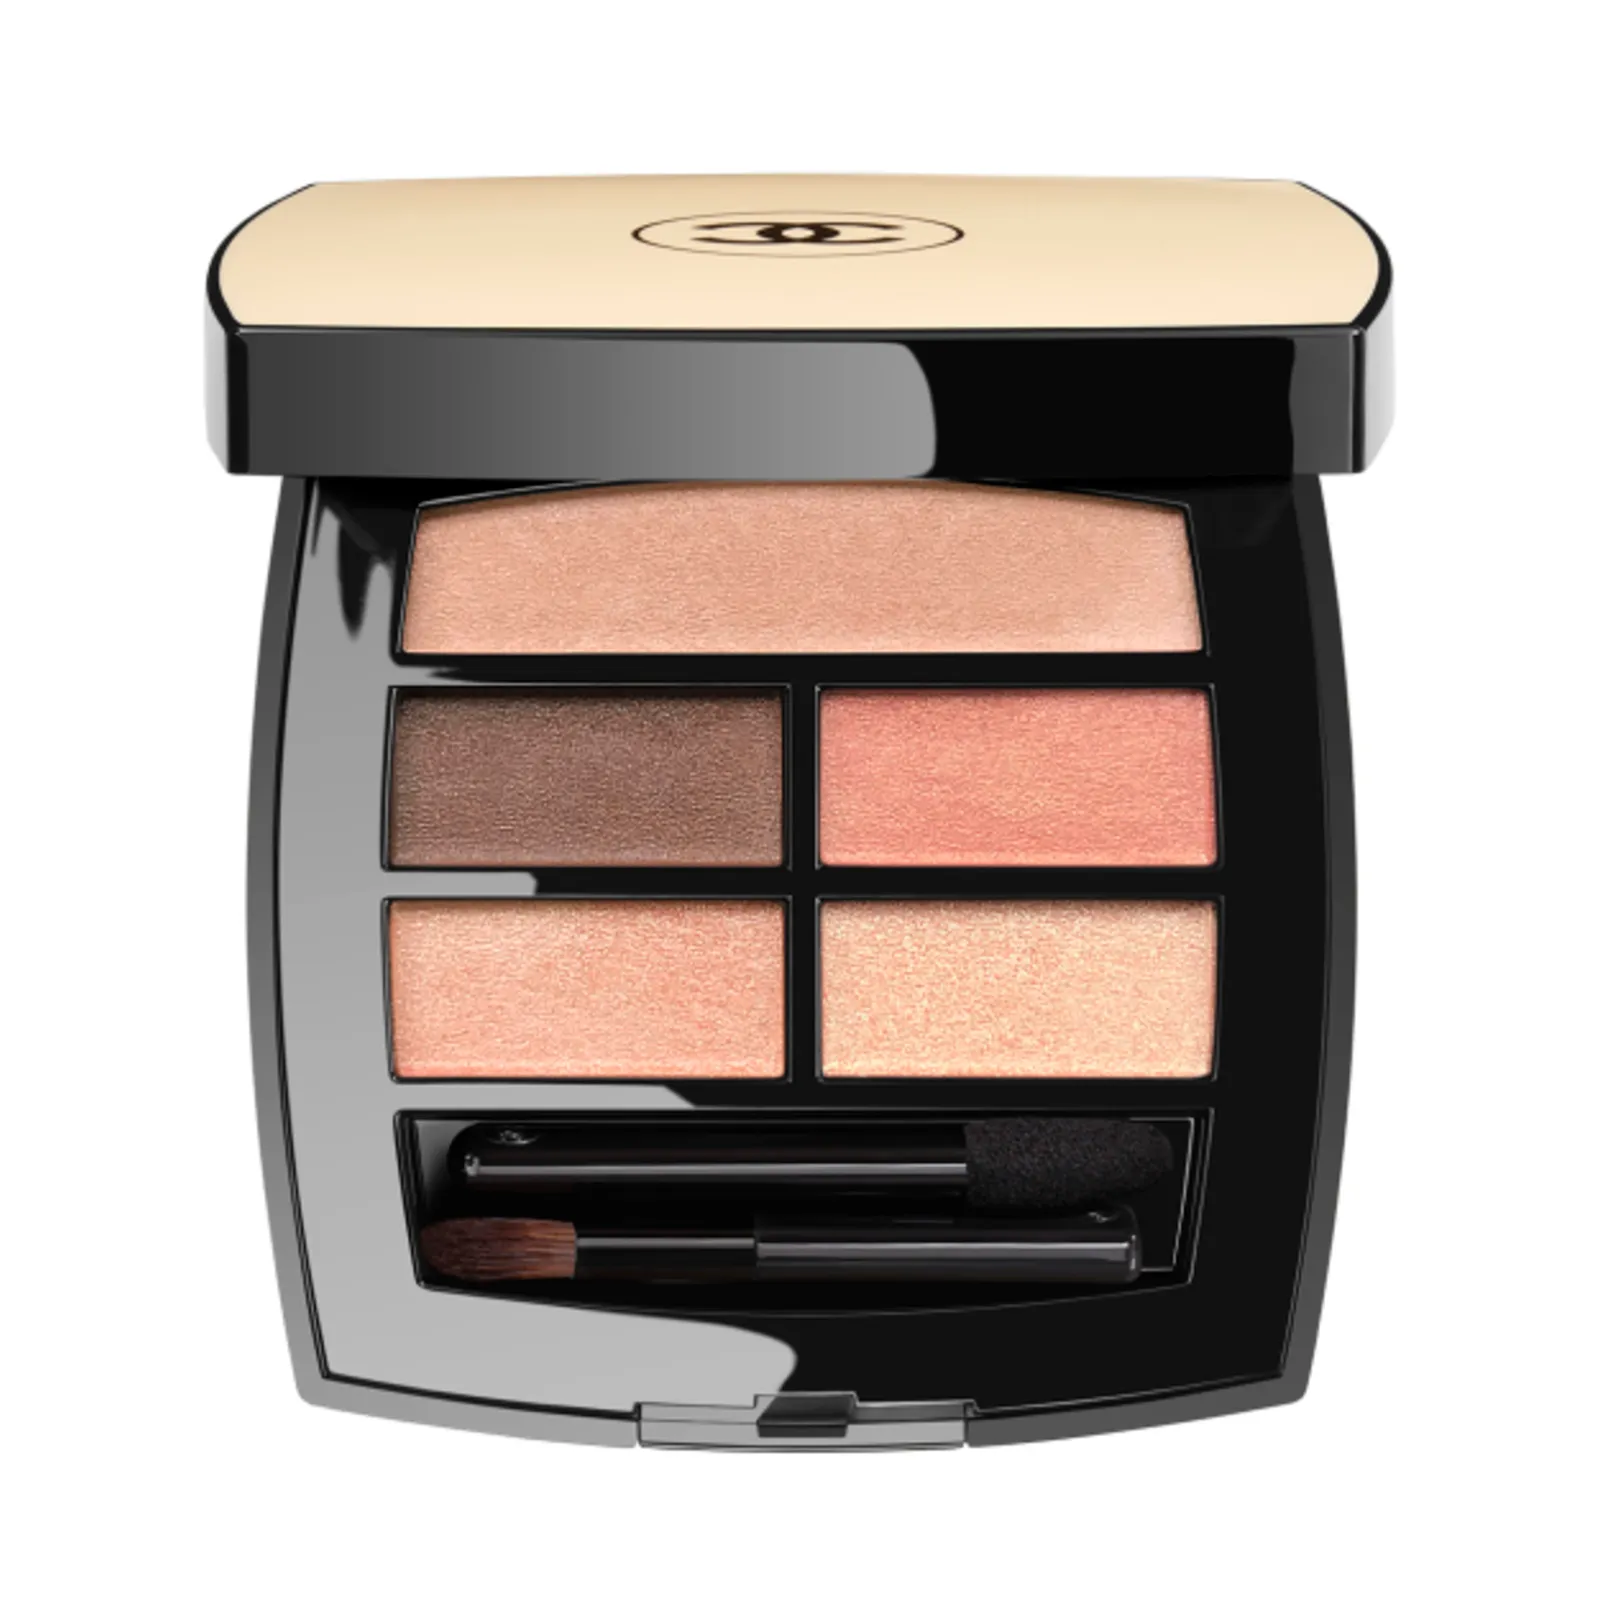 Chanel Les Beiges Healthy Glow Natural Eye Shadow Palette